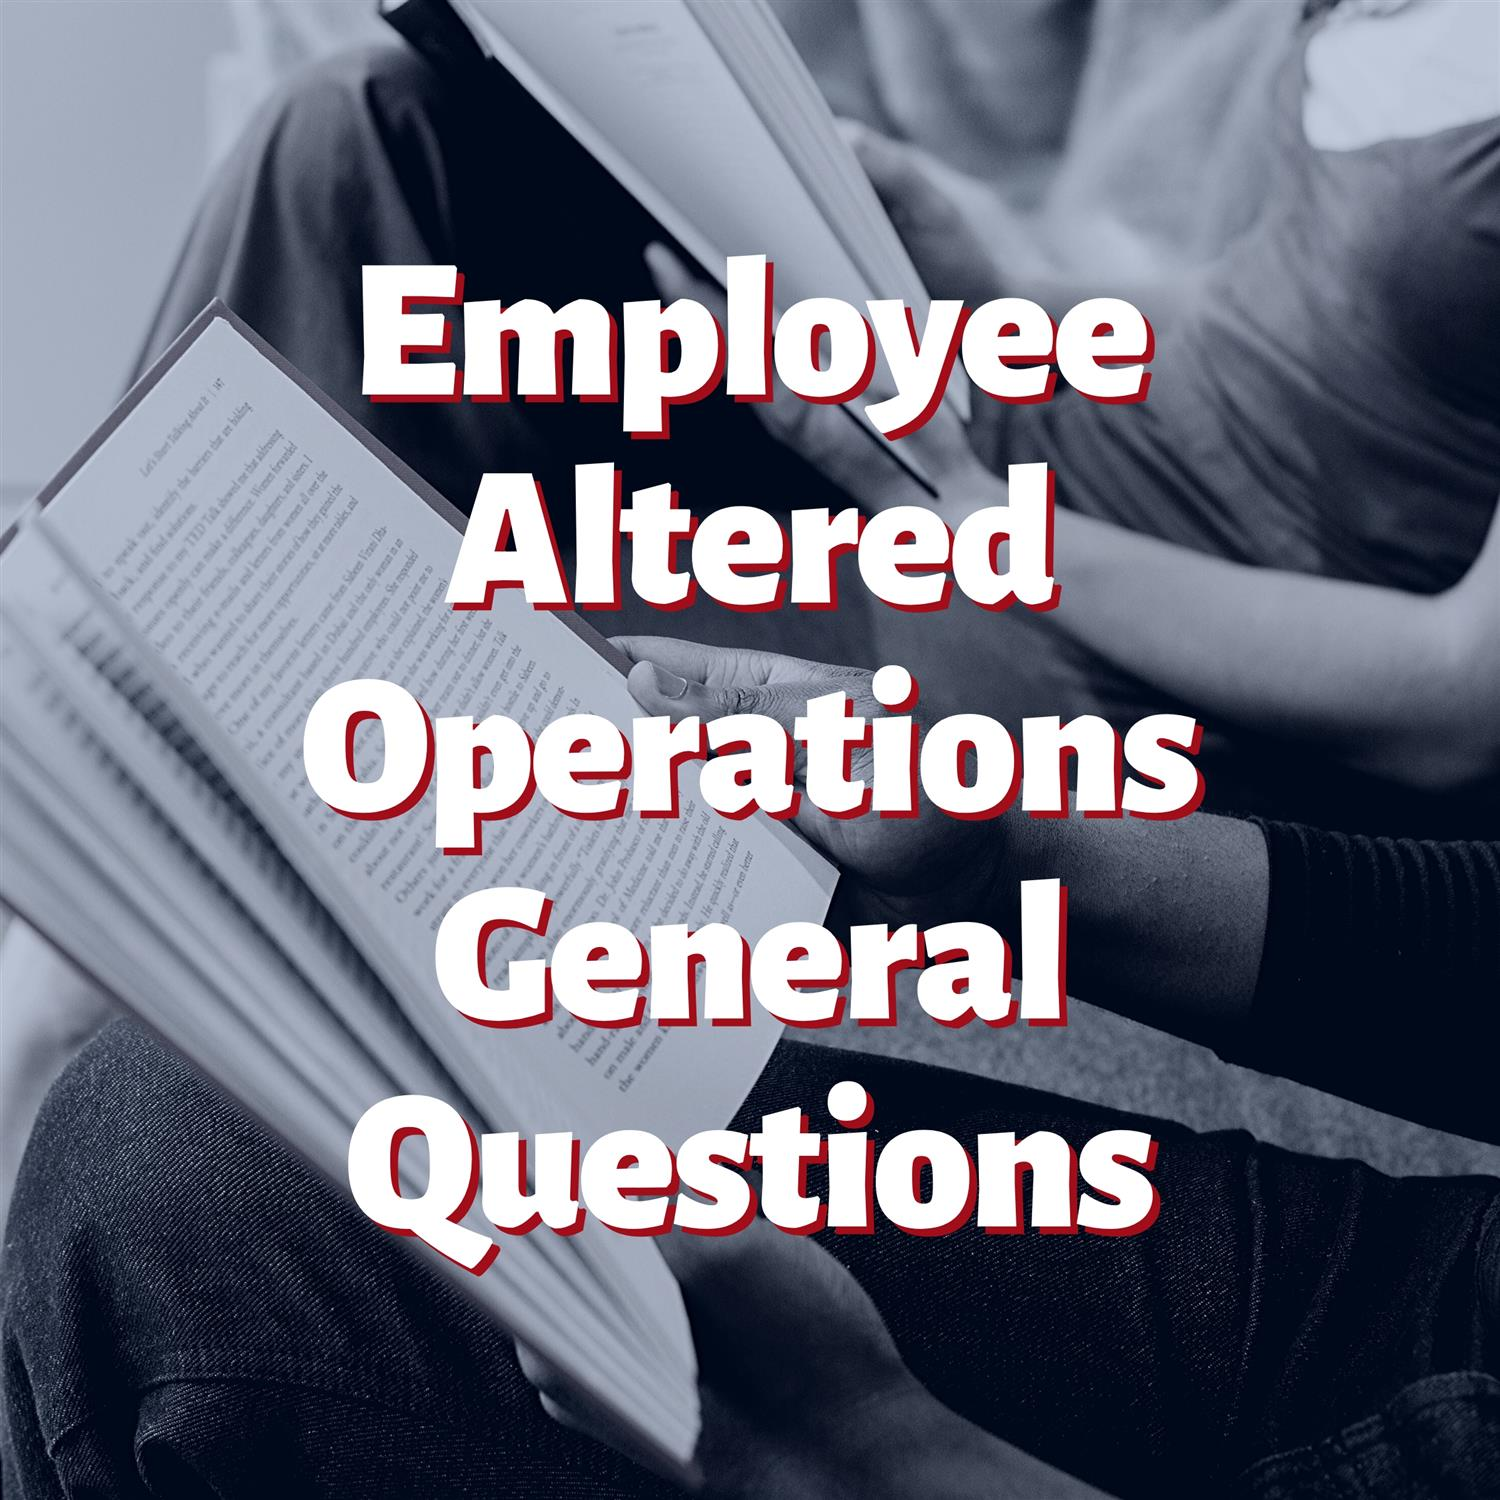 Employee Altered Operations General Questions